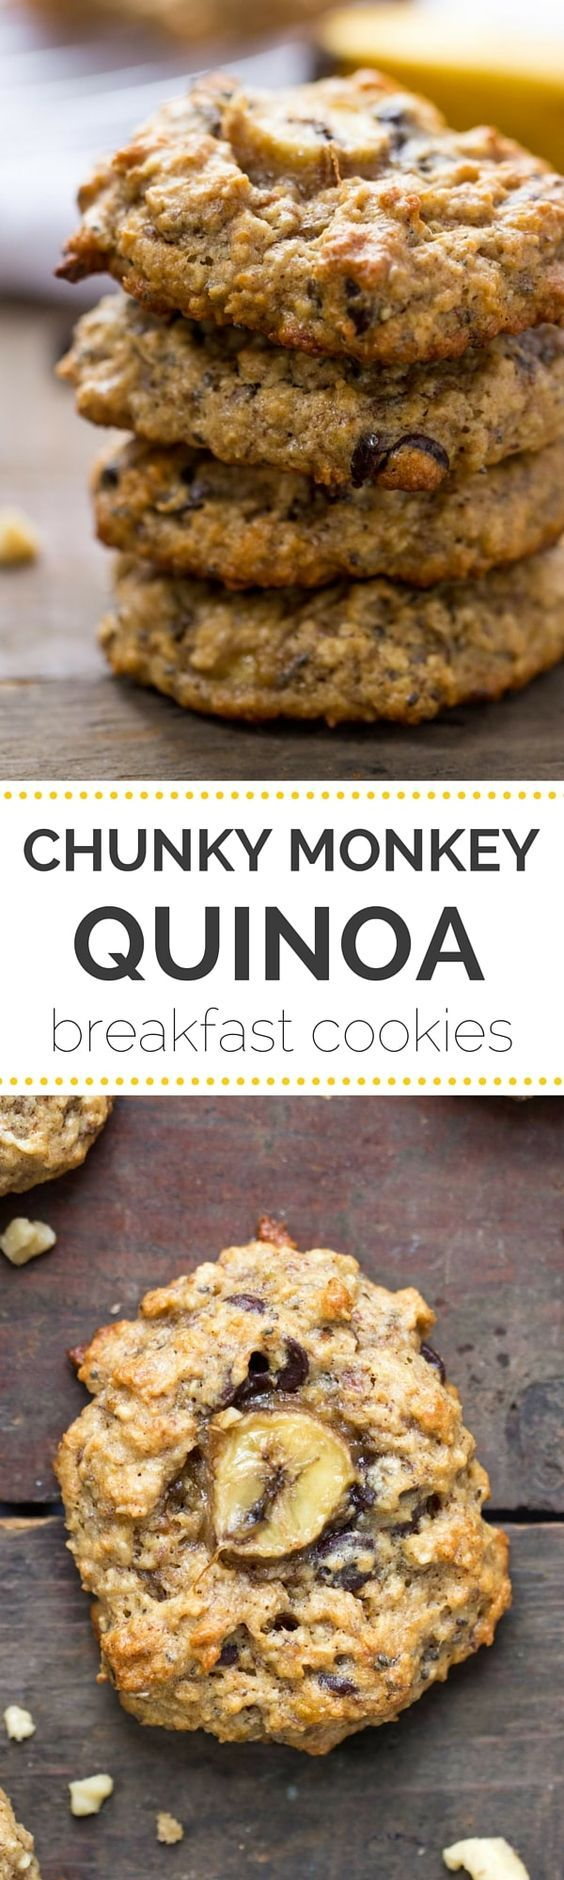 Chunky Monkey Quinoa Breakfast Cookies - These AMAZING chunky monkey quinoa breakfast cookies have banana, peanut butter and chocolate chips and they're actually HEALTHY.